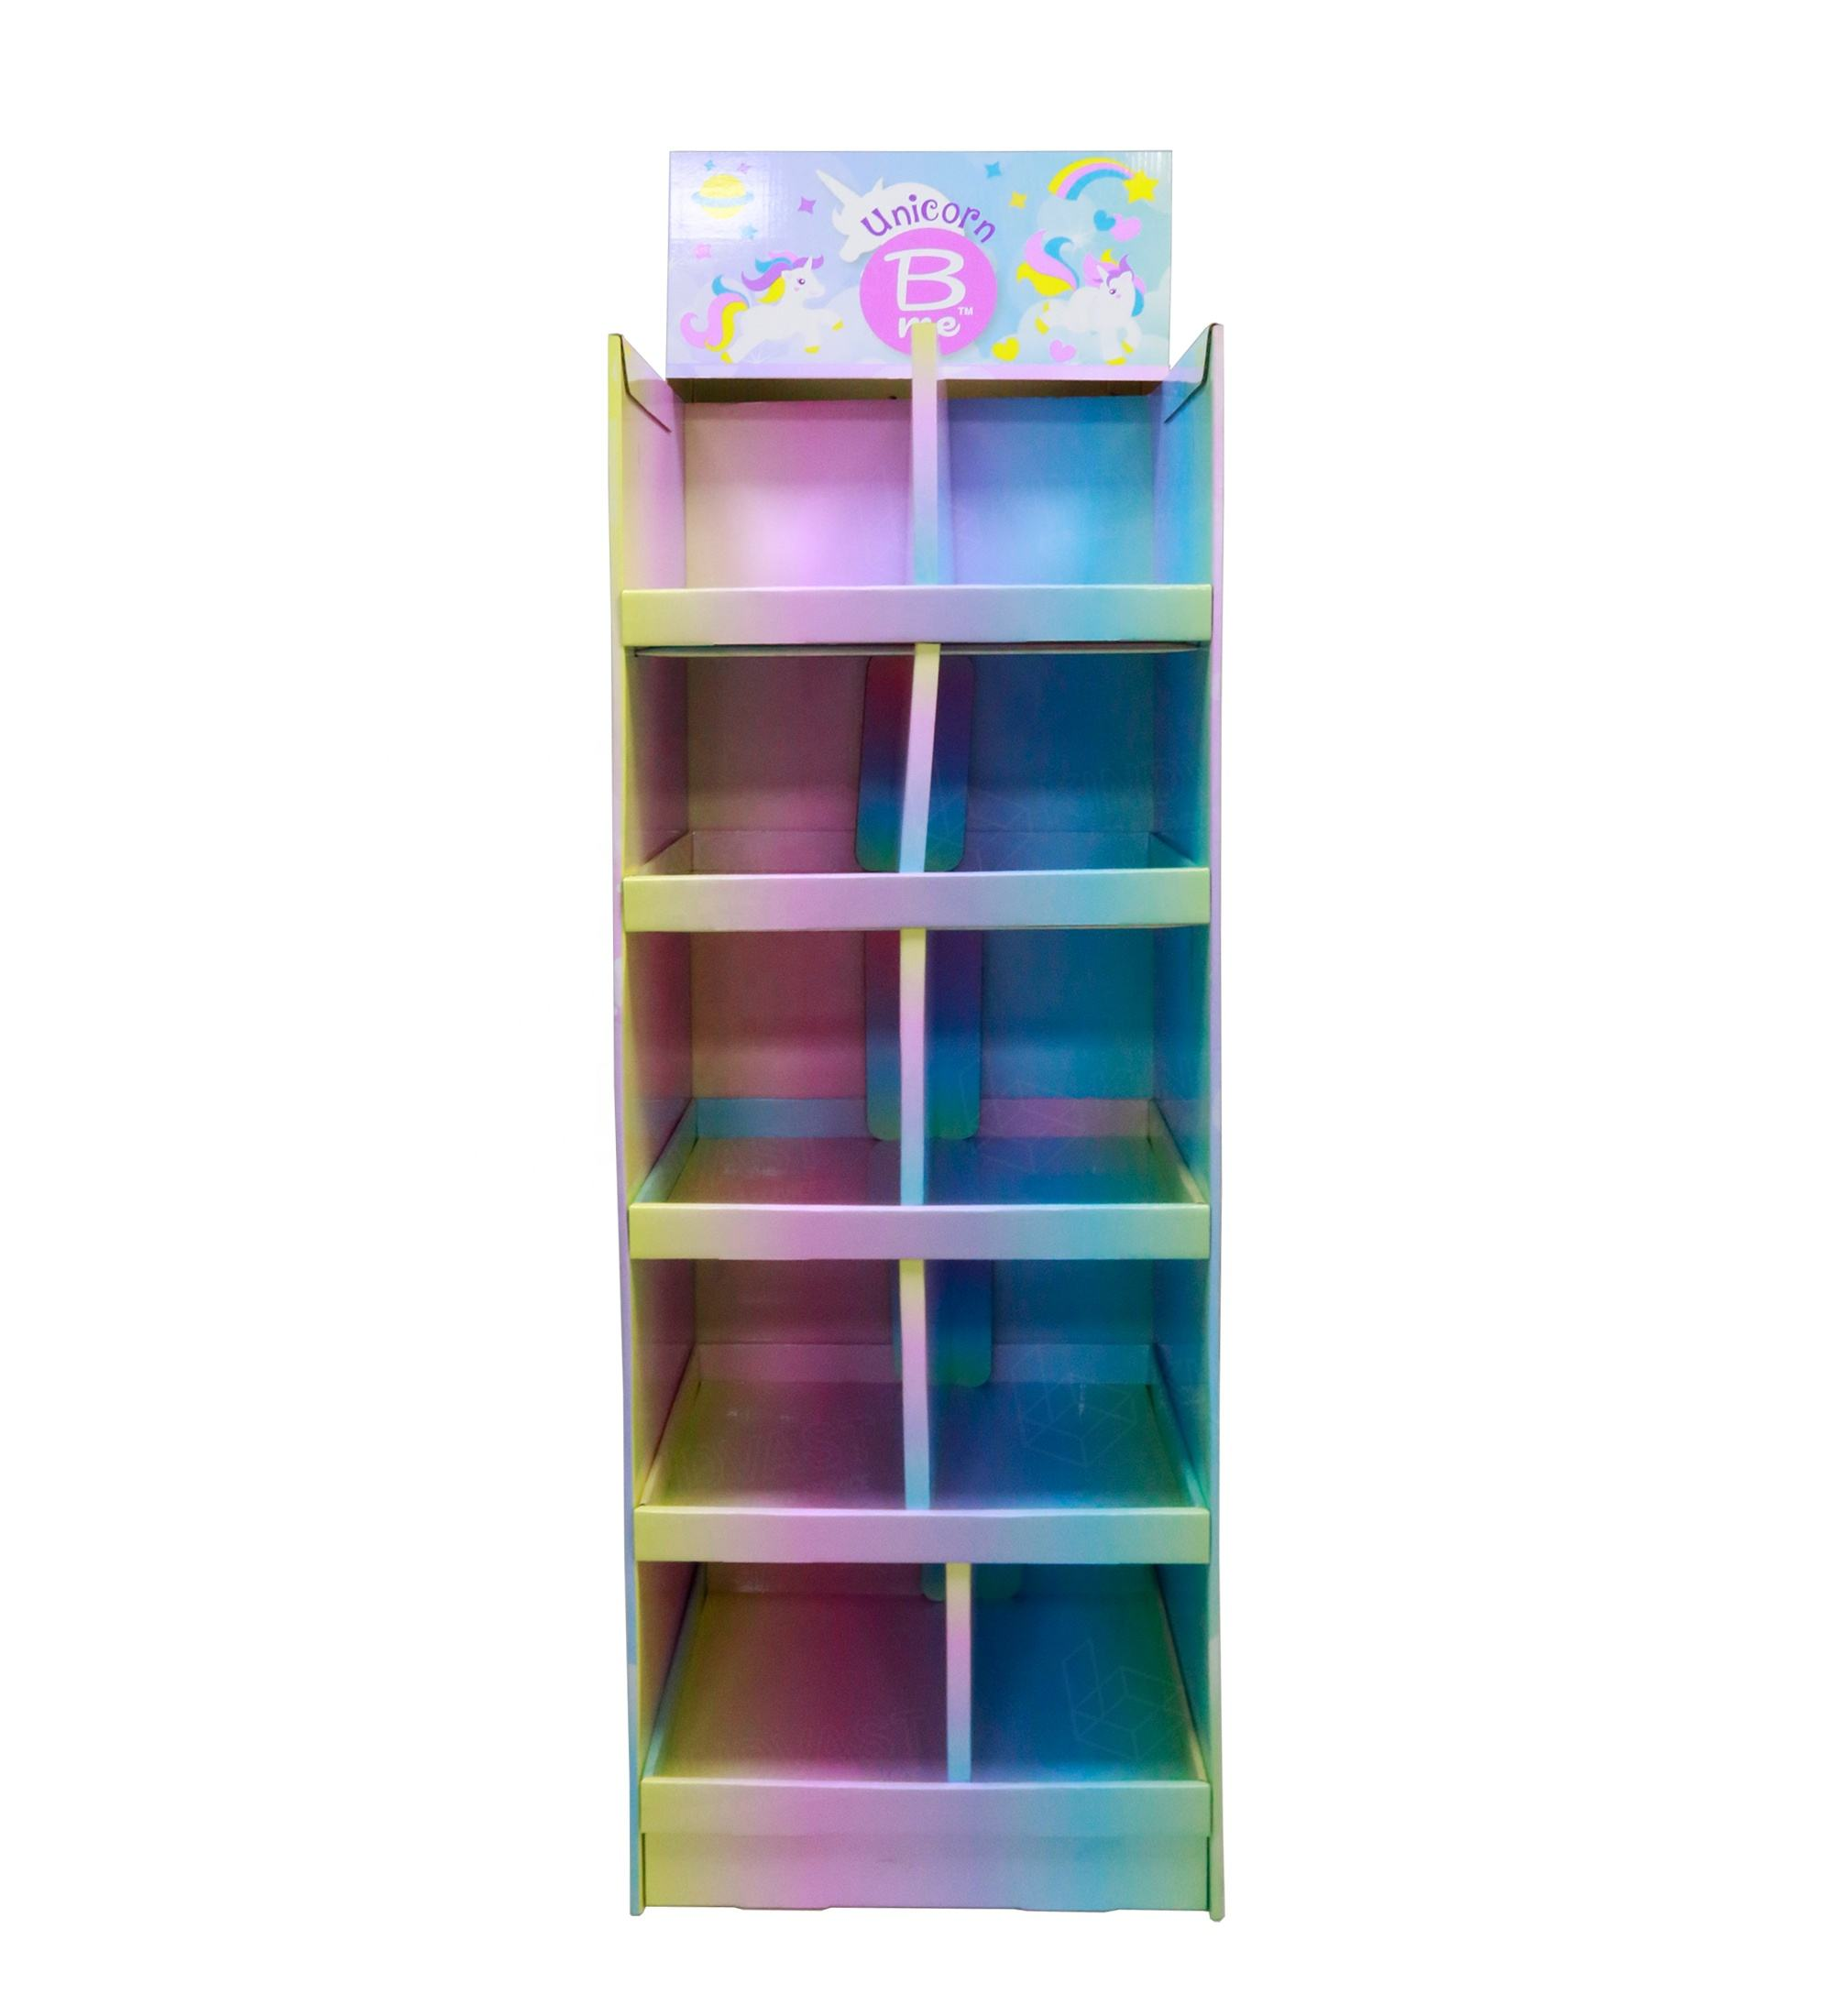 unicorn apparel pallet display tshirt women cardboard display baby clothes store display rack india retail stores miniso caps